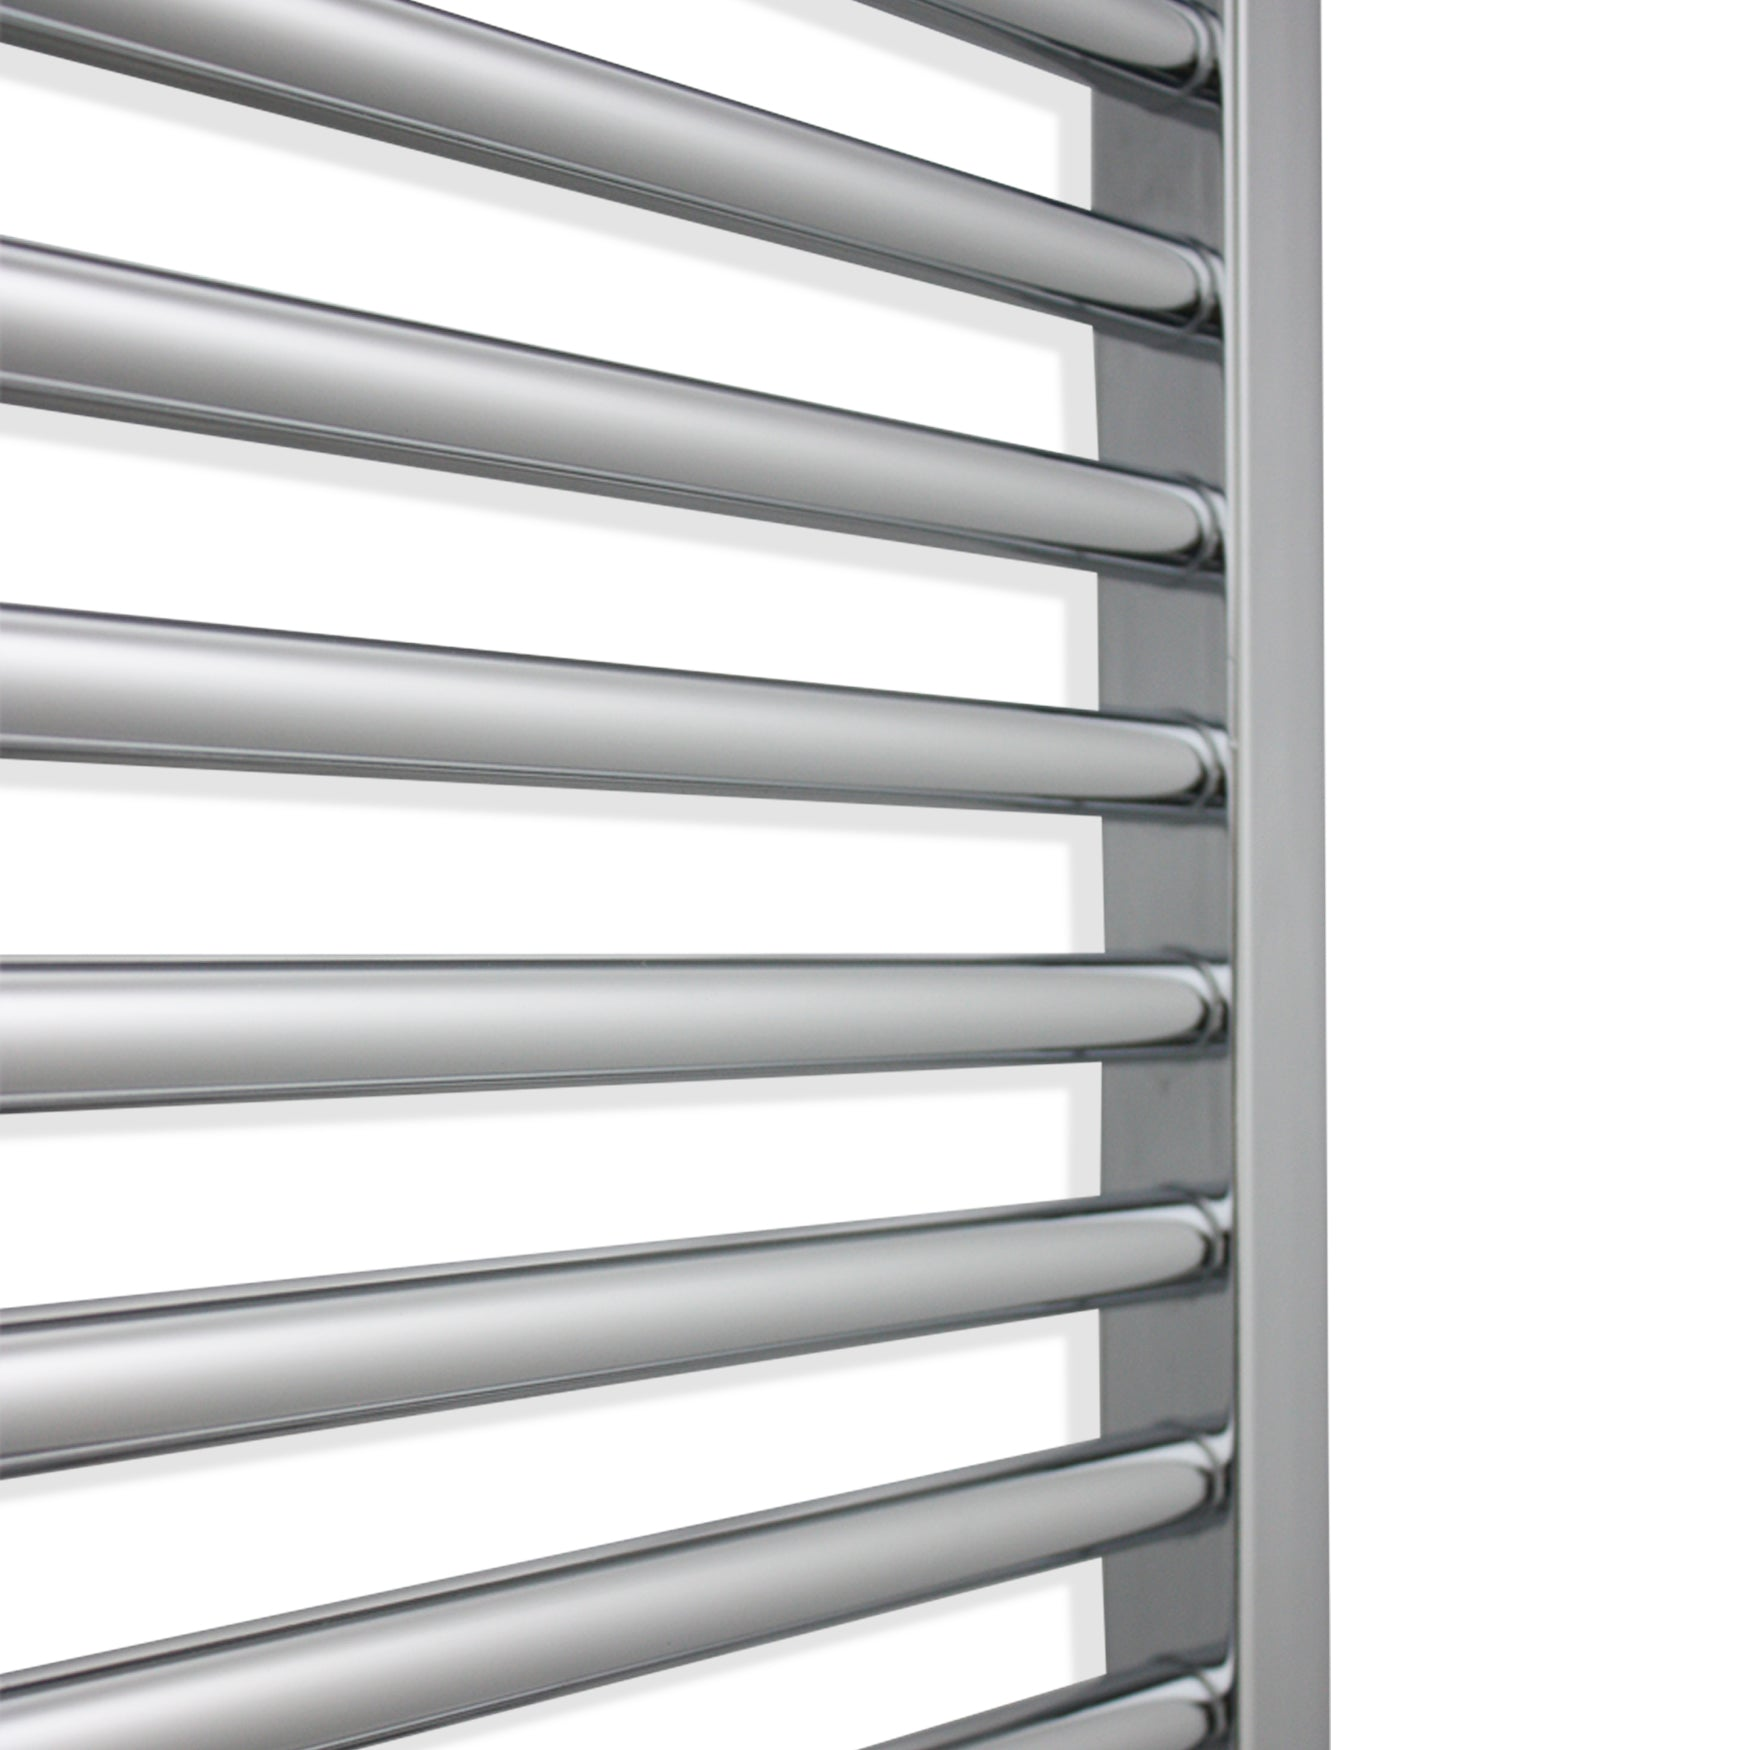 600mm Wide 800mm High Straight Chrome Heated Towel Rail: 800mm Wide 600mm High Flat Chrome Heated Towel Rail